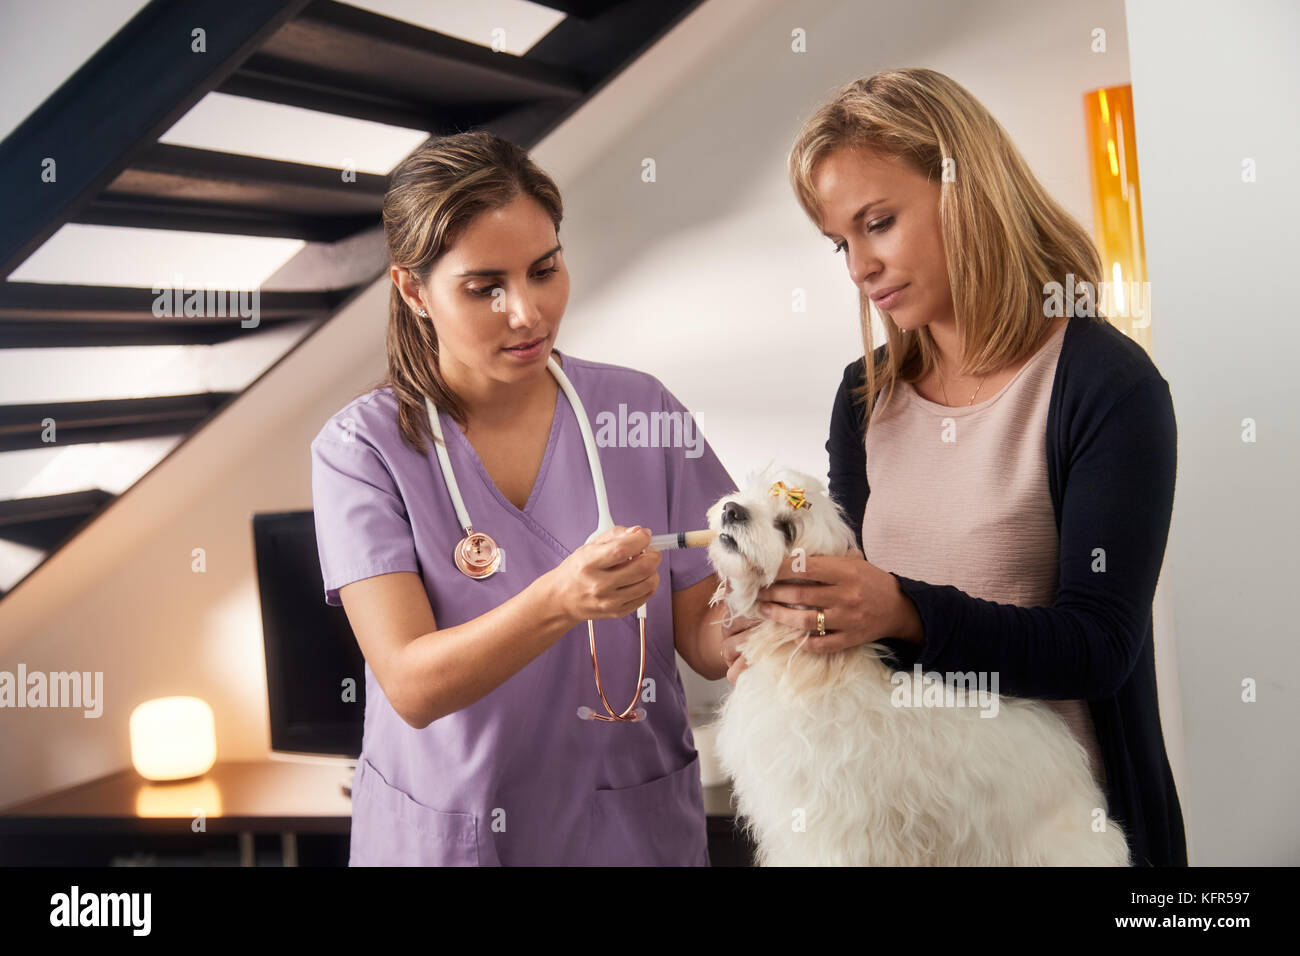 Vet And Dog Owner Giving Medicine Drug To Dog - Stock Image